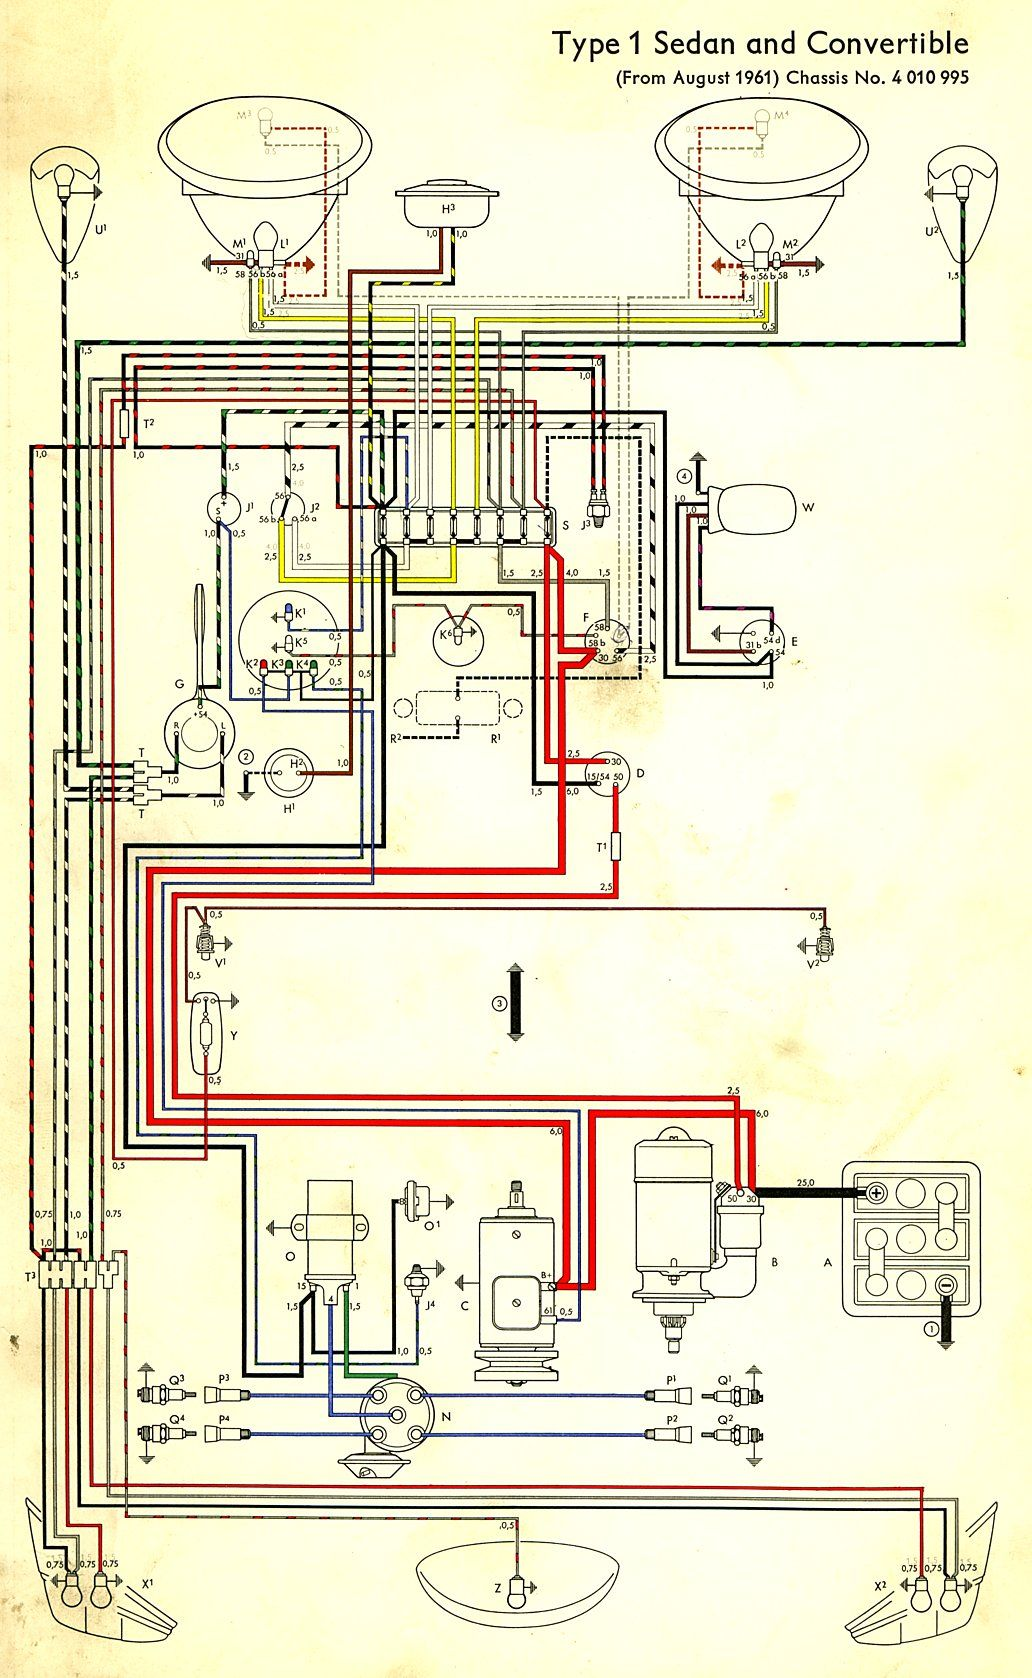 f471c06218a1f57c2503376a8b366a28 1965 vw wiring diagram 1965 volkswagen type 1 beetle diy project 1960 vw bus wiring diagram at fashall.co